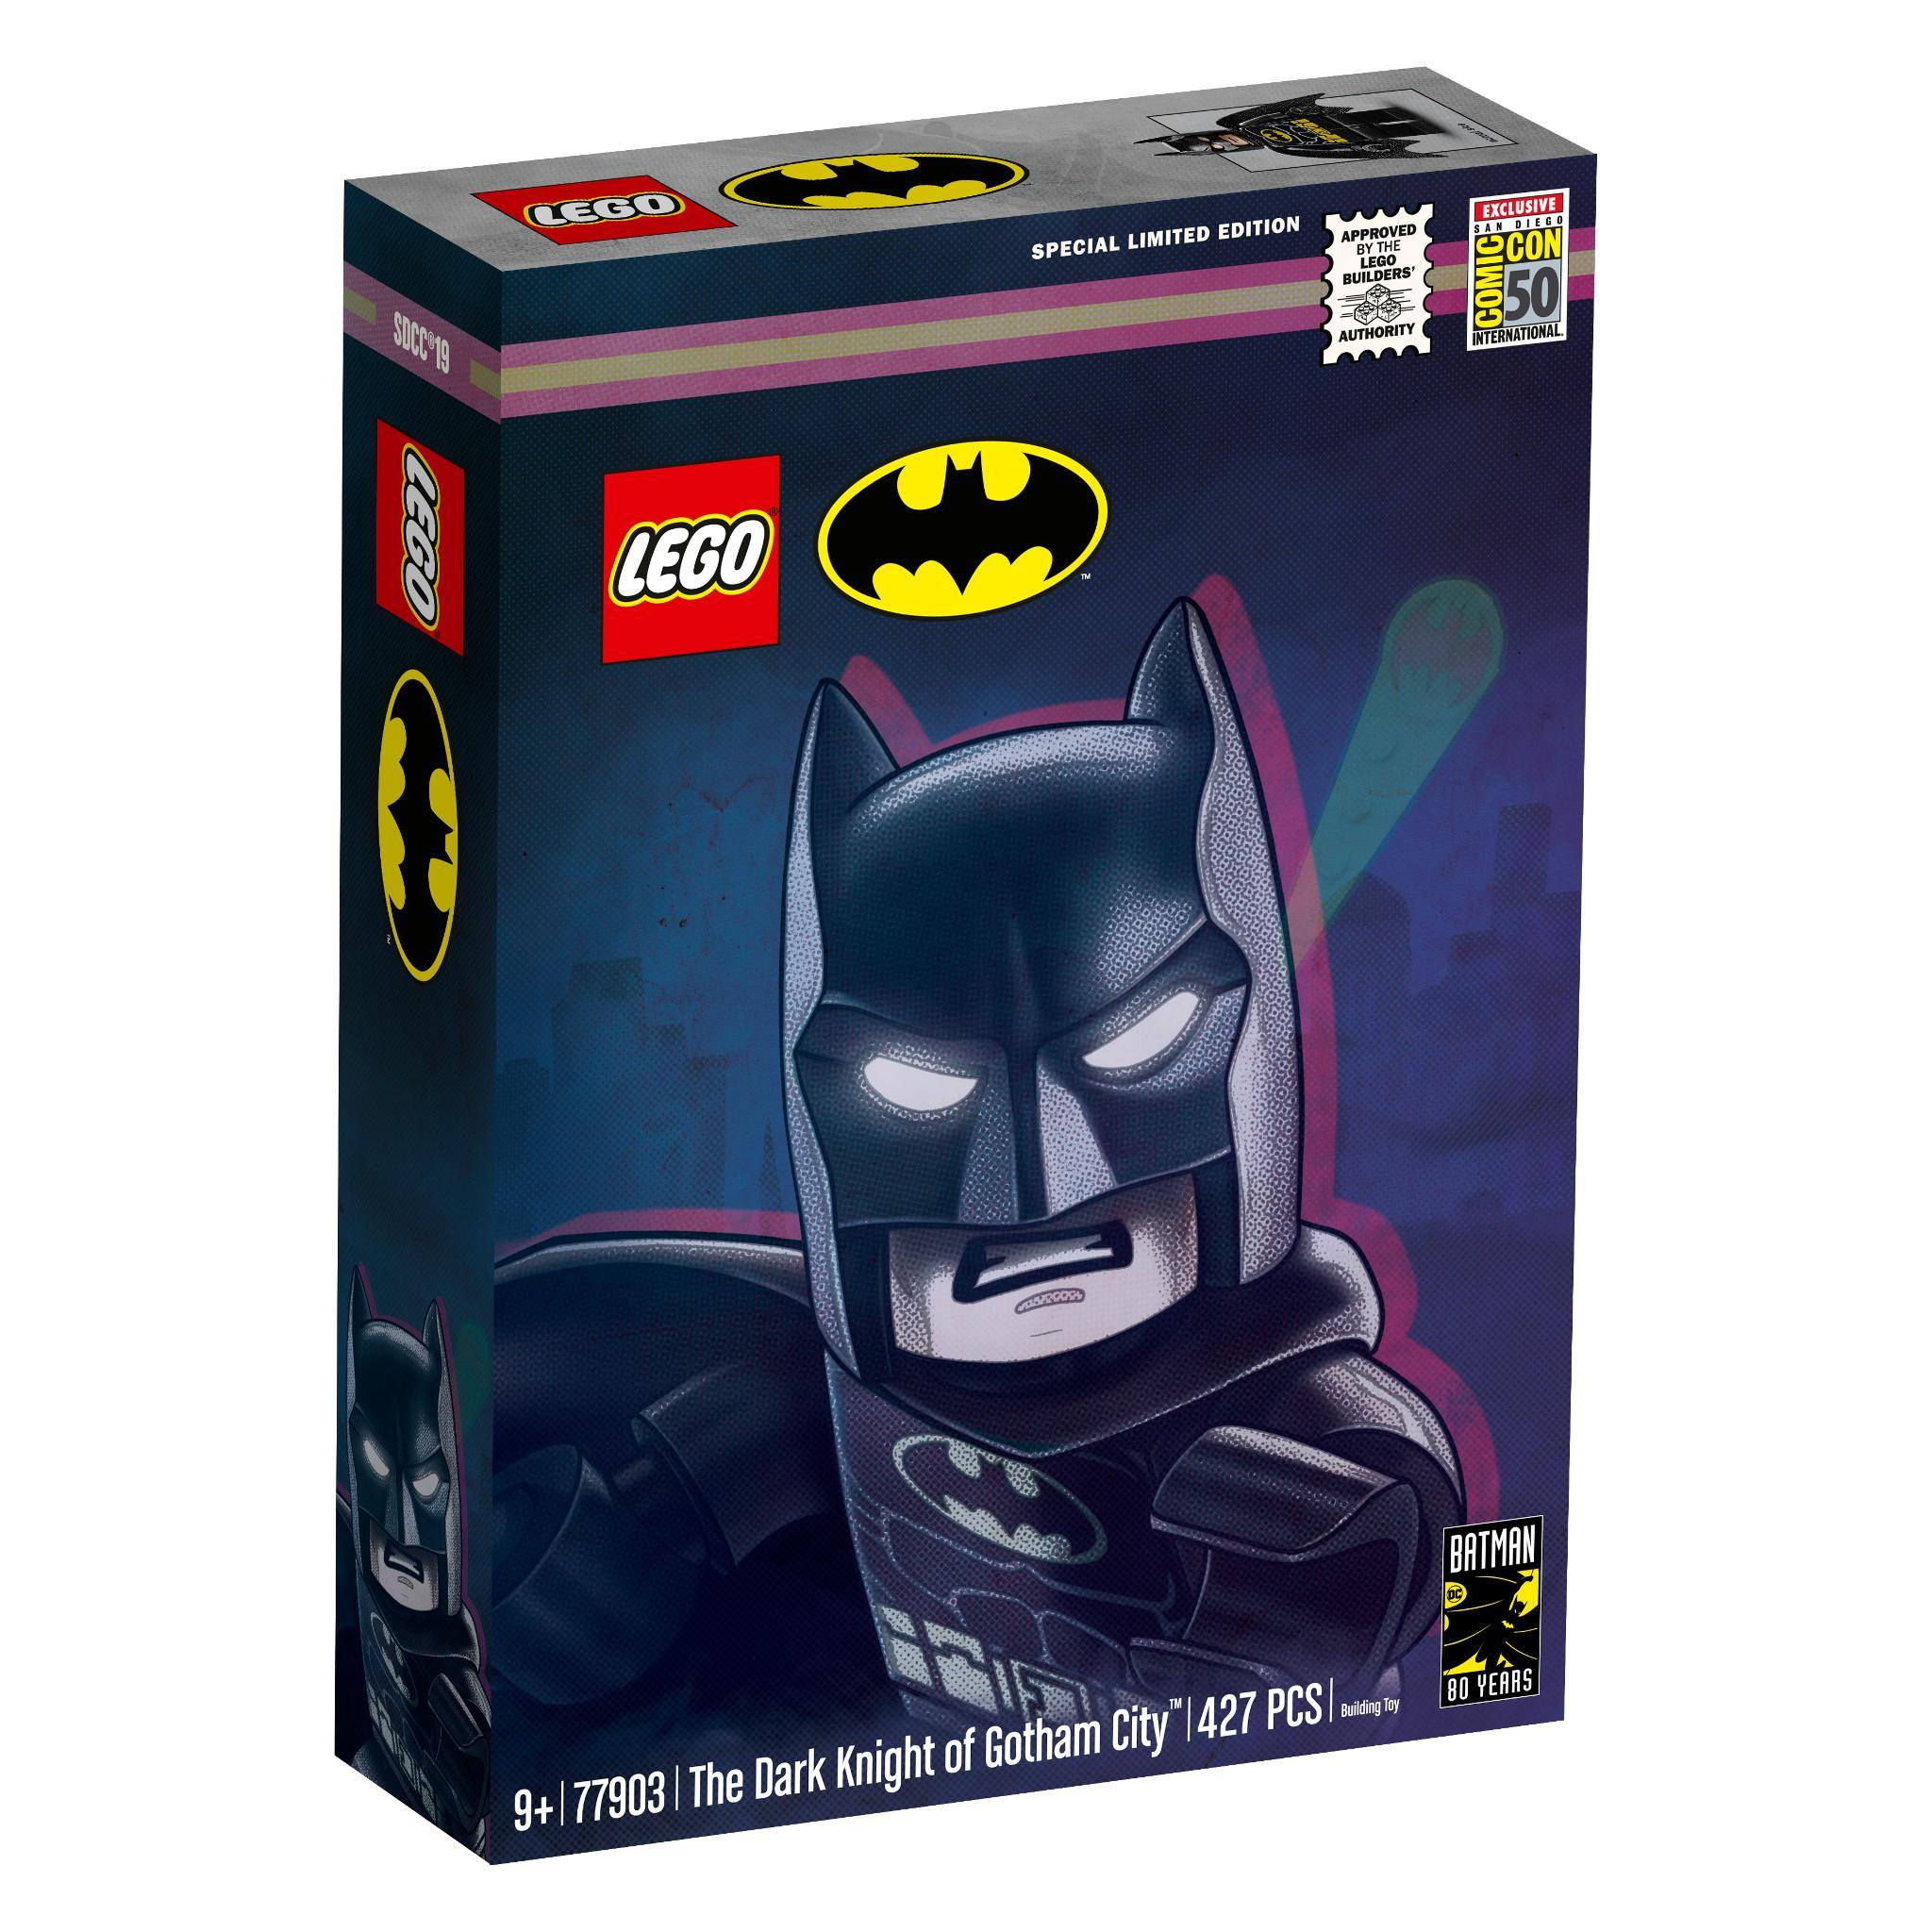 LEGO Batman The Dark Knight of Gotham City Brickfinder 02